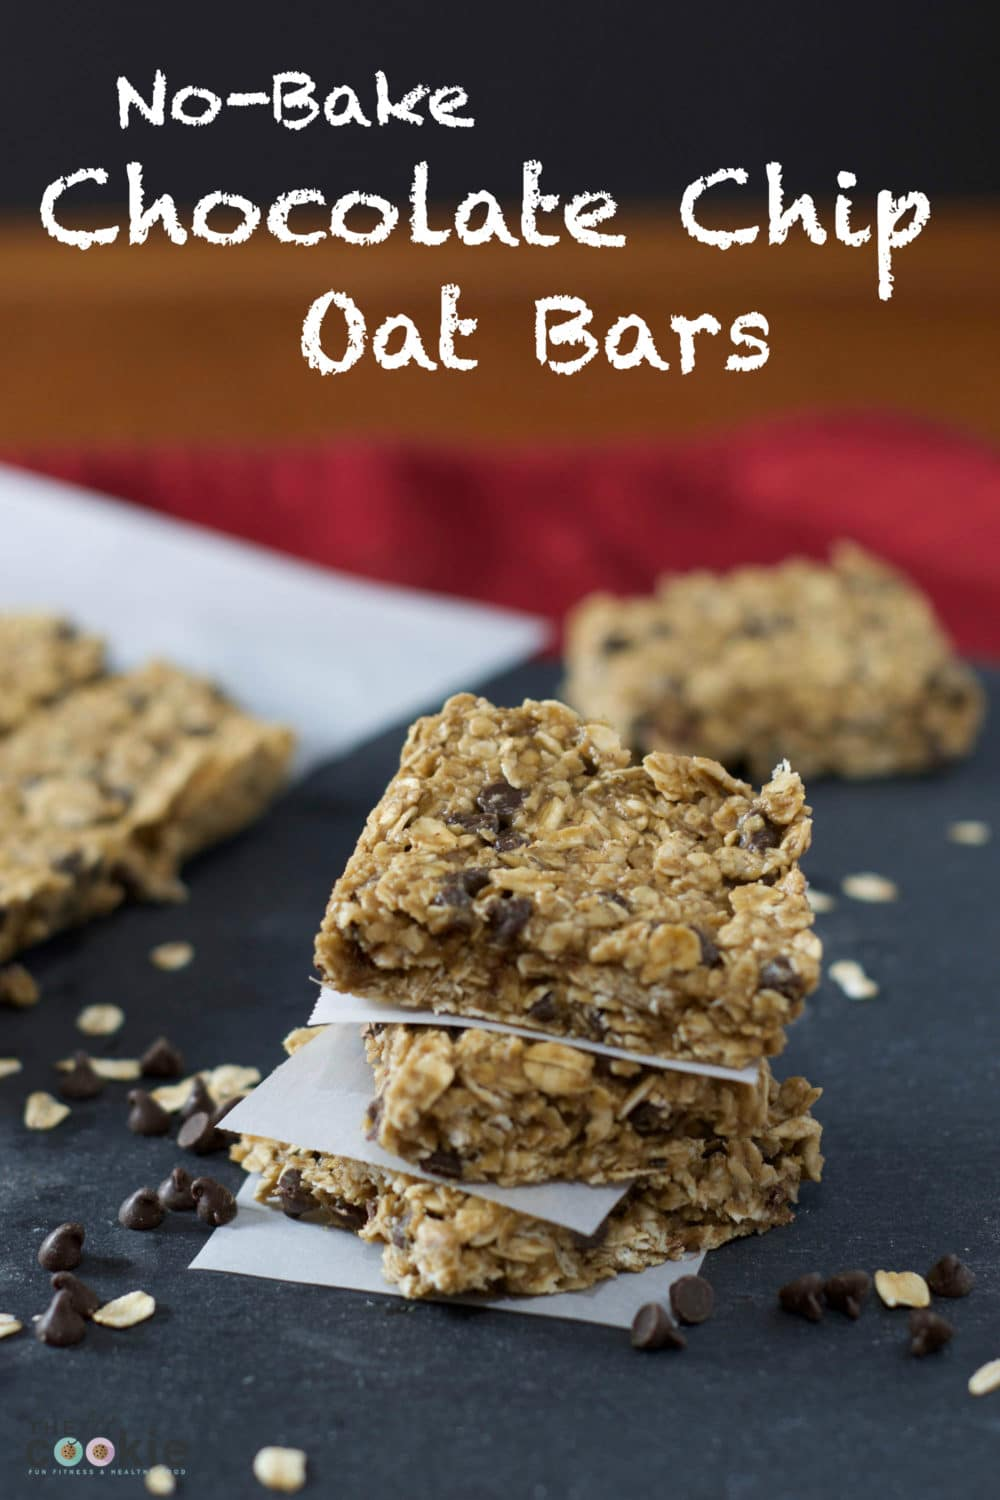 The perfect after-school sweet treat: No-Bake Chocolate Chip Oat Bars - #ad @BobsRedMill @thefitcookie #BRMOats #glutenfree #vegan